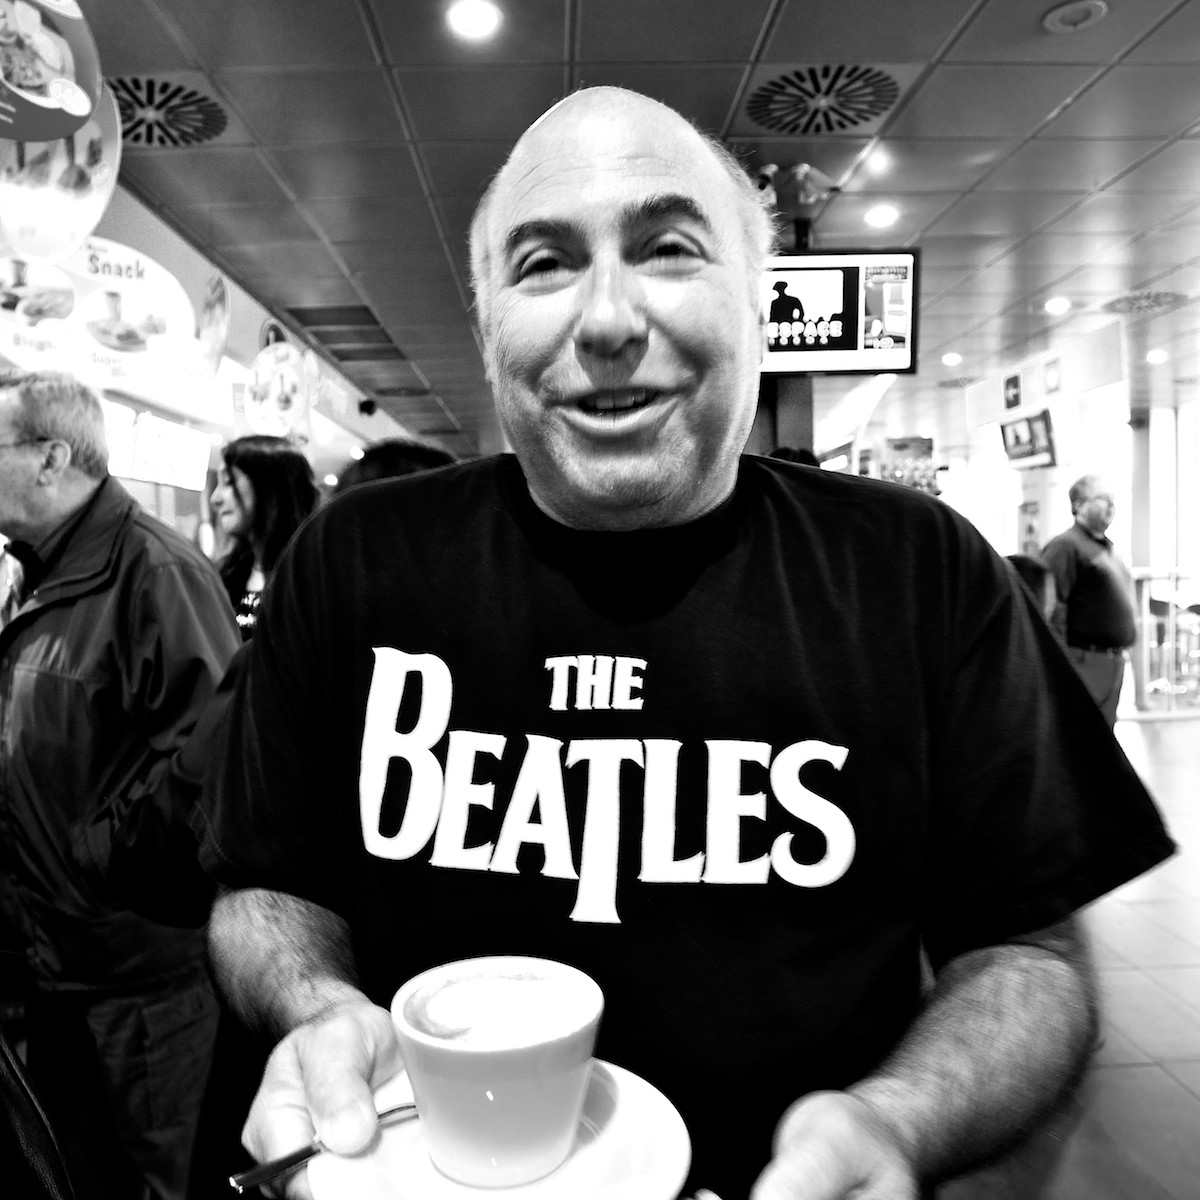 The Beatles Caffè